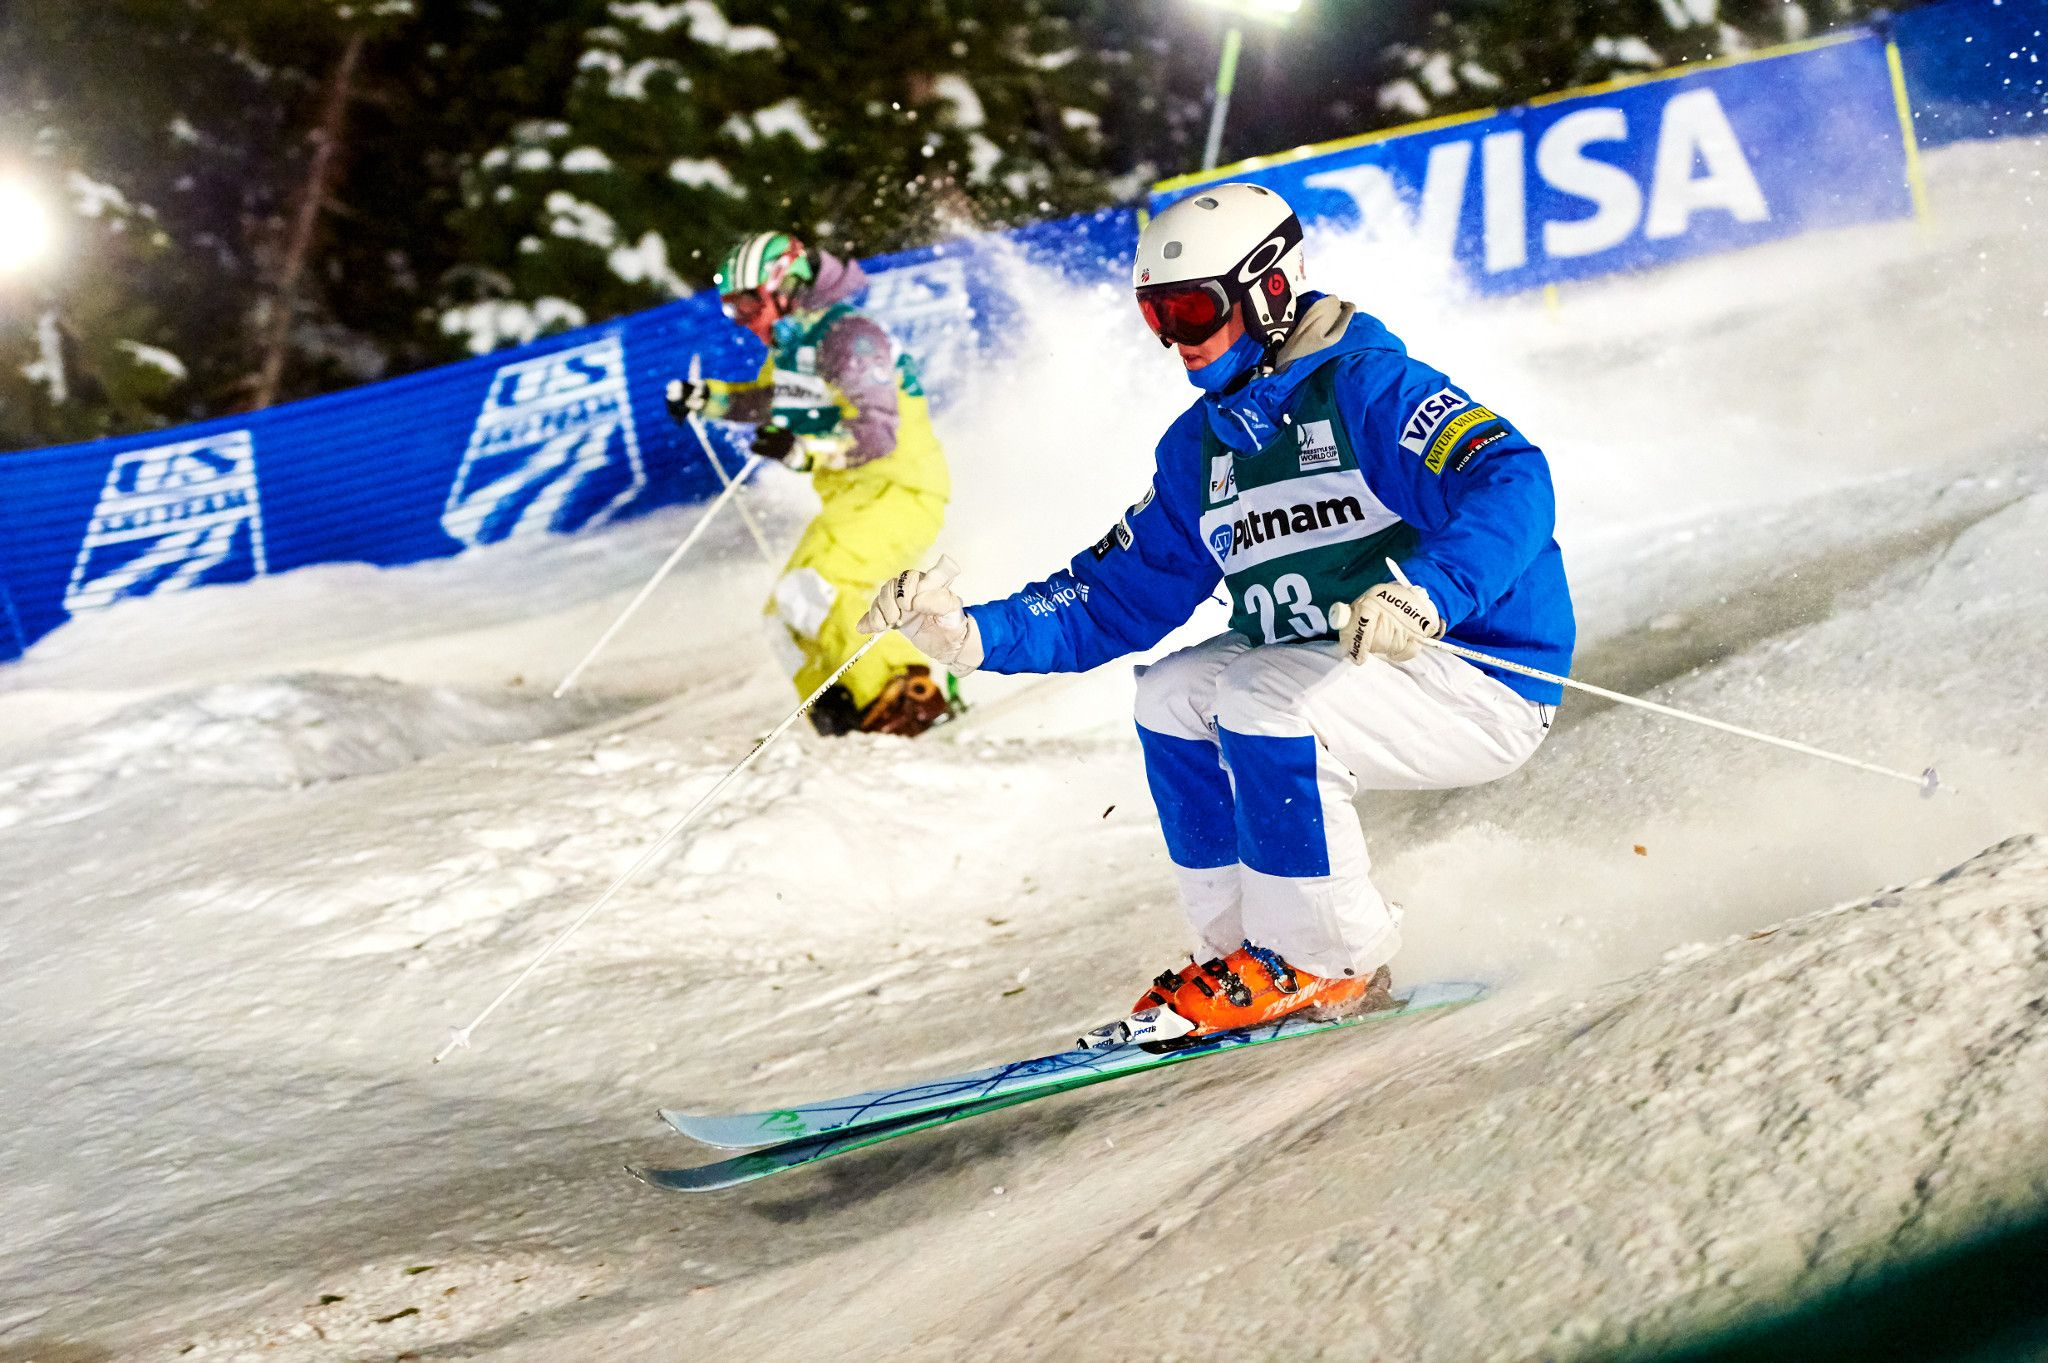 Two mogul skiers racing down Champion Ski Run at Deer Valley Resort during the 2018 world cup